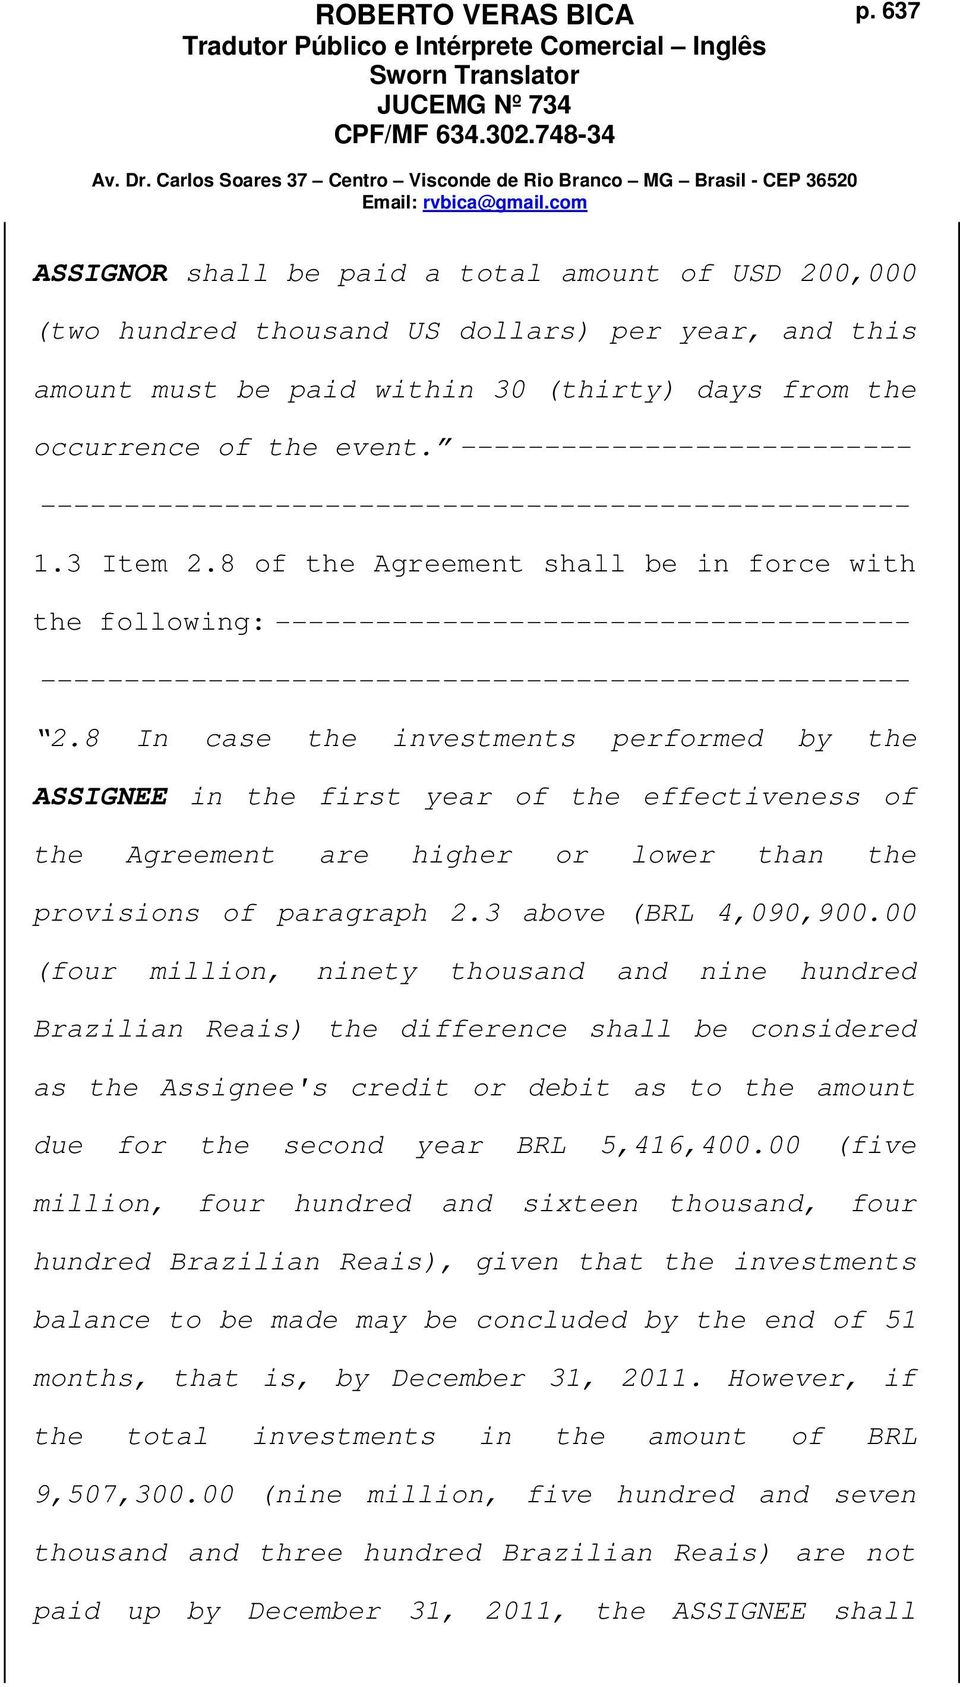 8 In case the investments performed by the ASSIGNEE in the first year of the effectiveness of the Agreement are higher or lower than the provisions of paragraph 2.3 above (BRL 4,090,900.